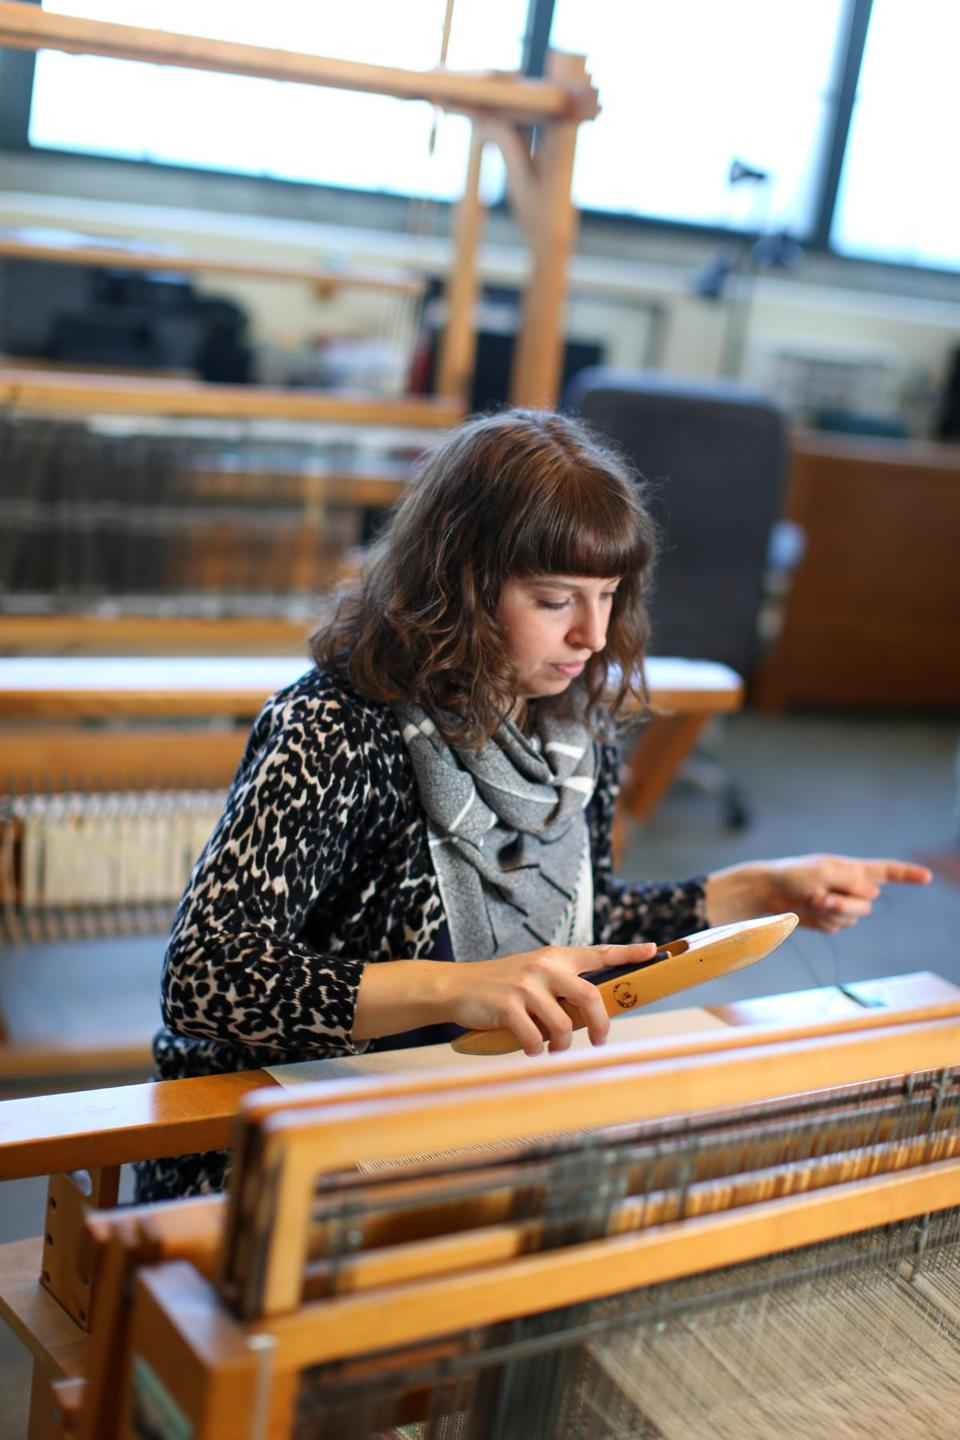 04132016 Lowell Ma Leanne Tremblay (cq) is a award winning textile design and fiber artist. She is photographed at her Lowell Studio .Boston Globe/Staff Photographer Jonathan Wiggs